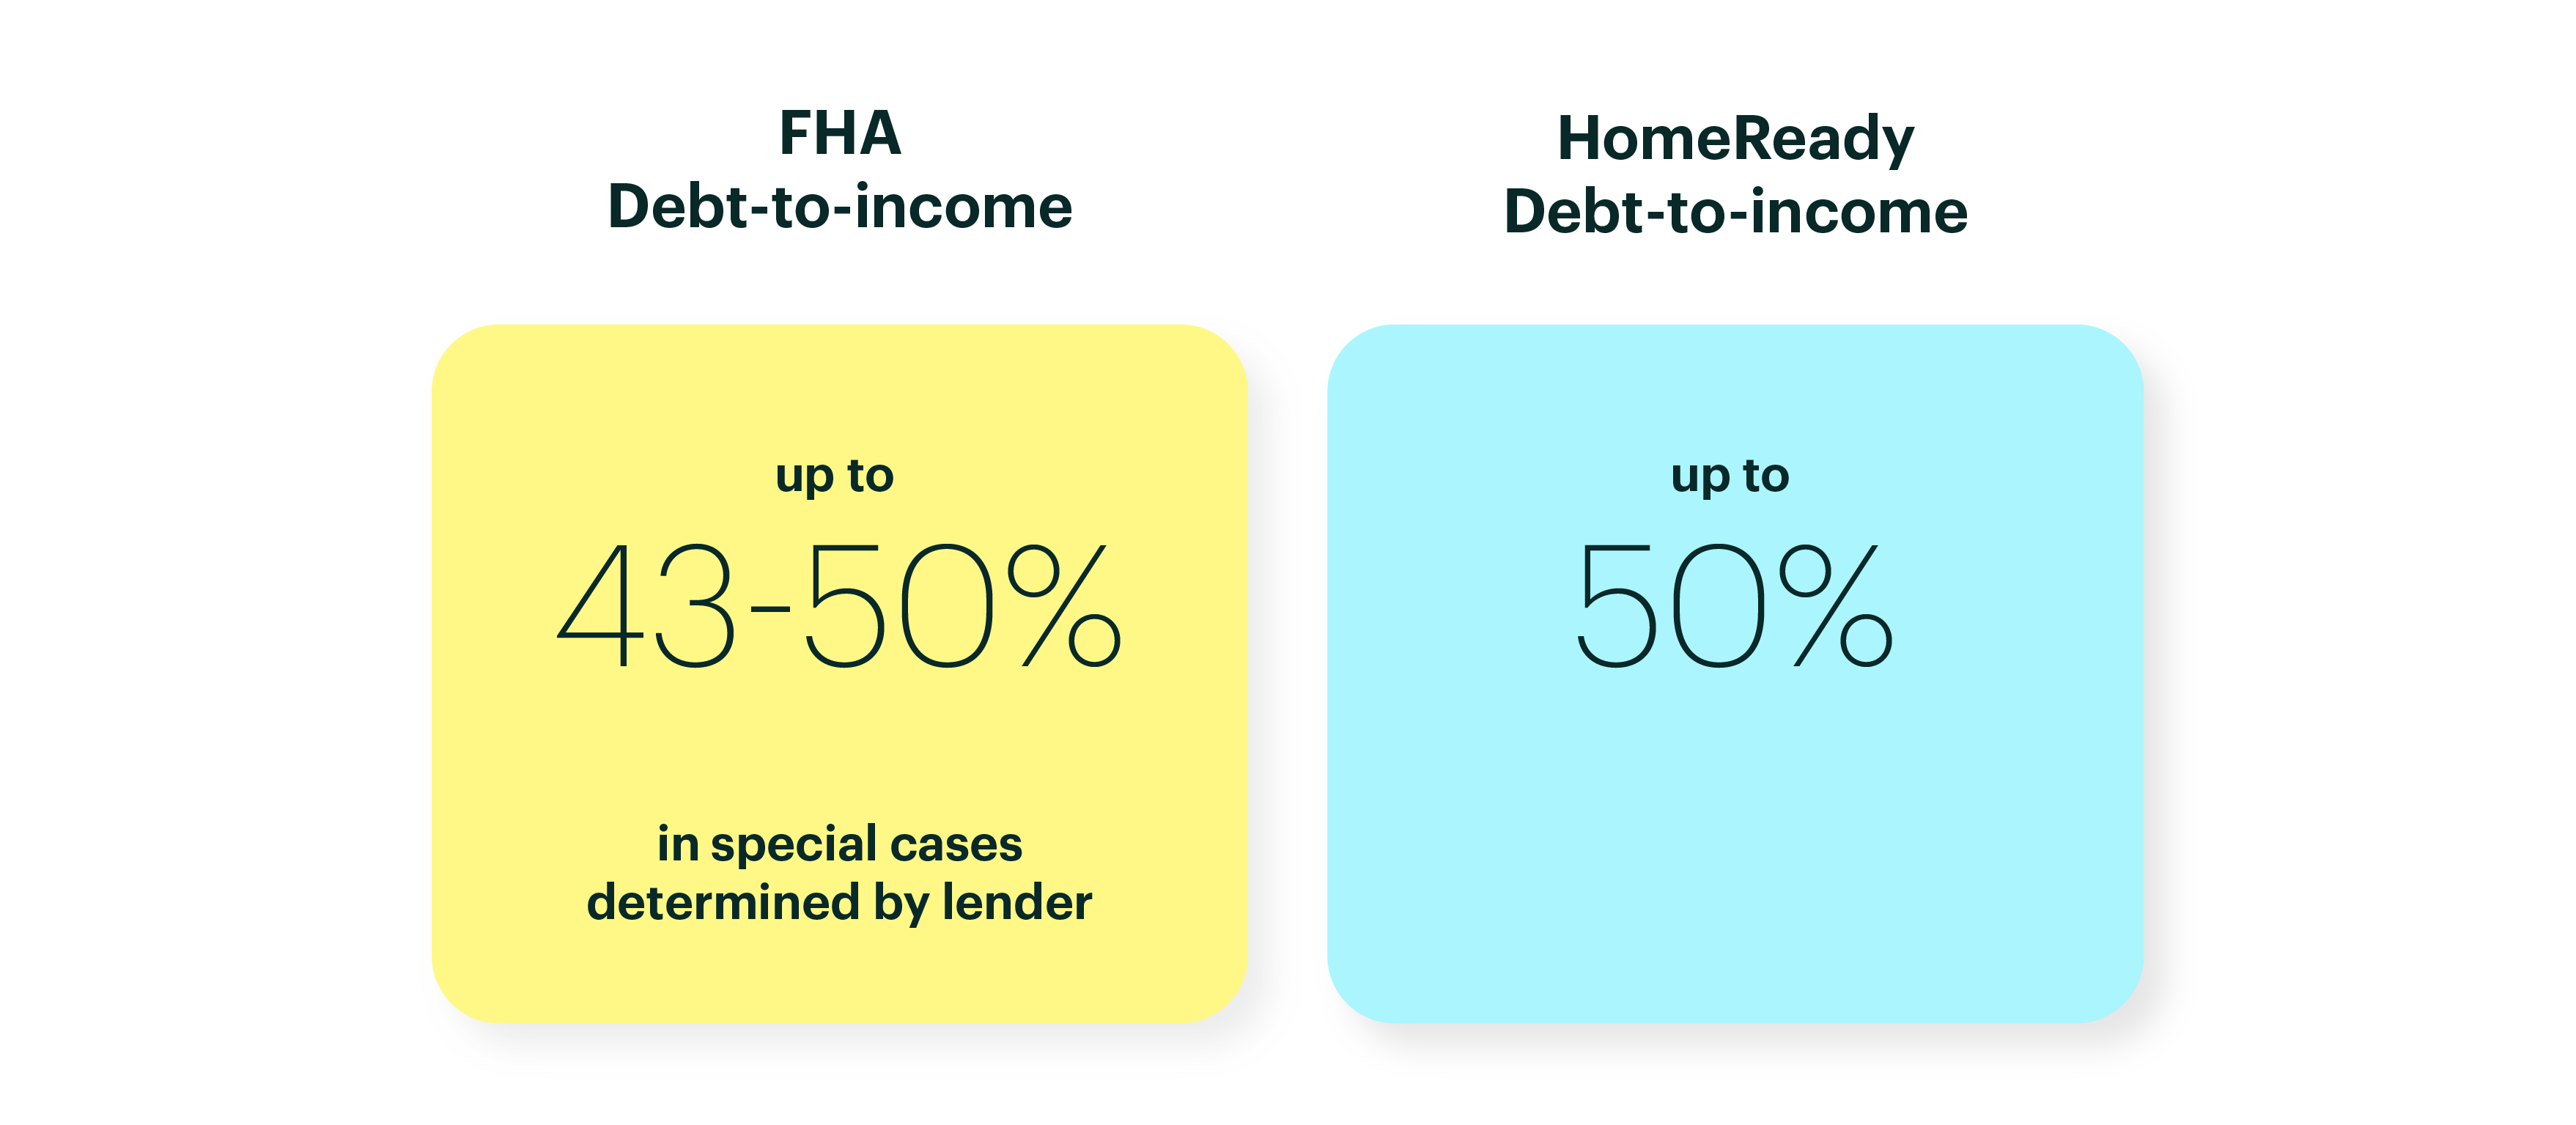 Graphic with FHA Credit Scores Versus HomeReady Debt to Income Ratio Requirements